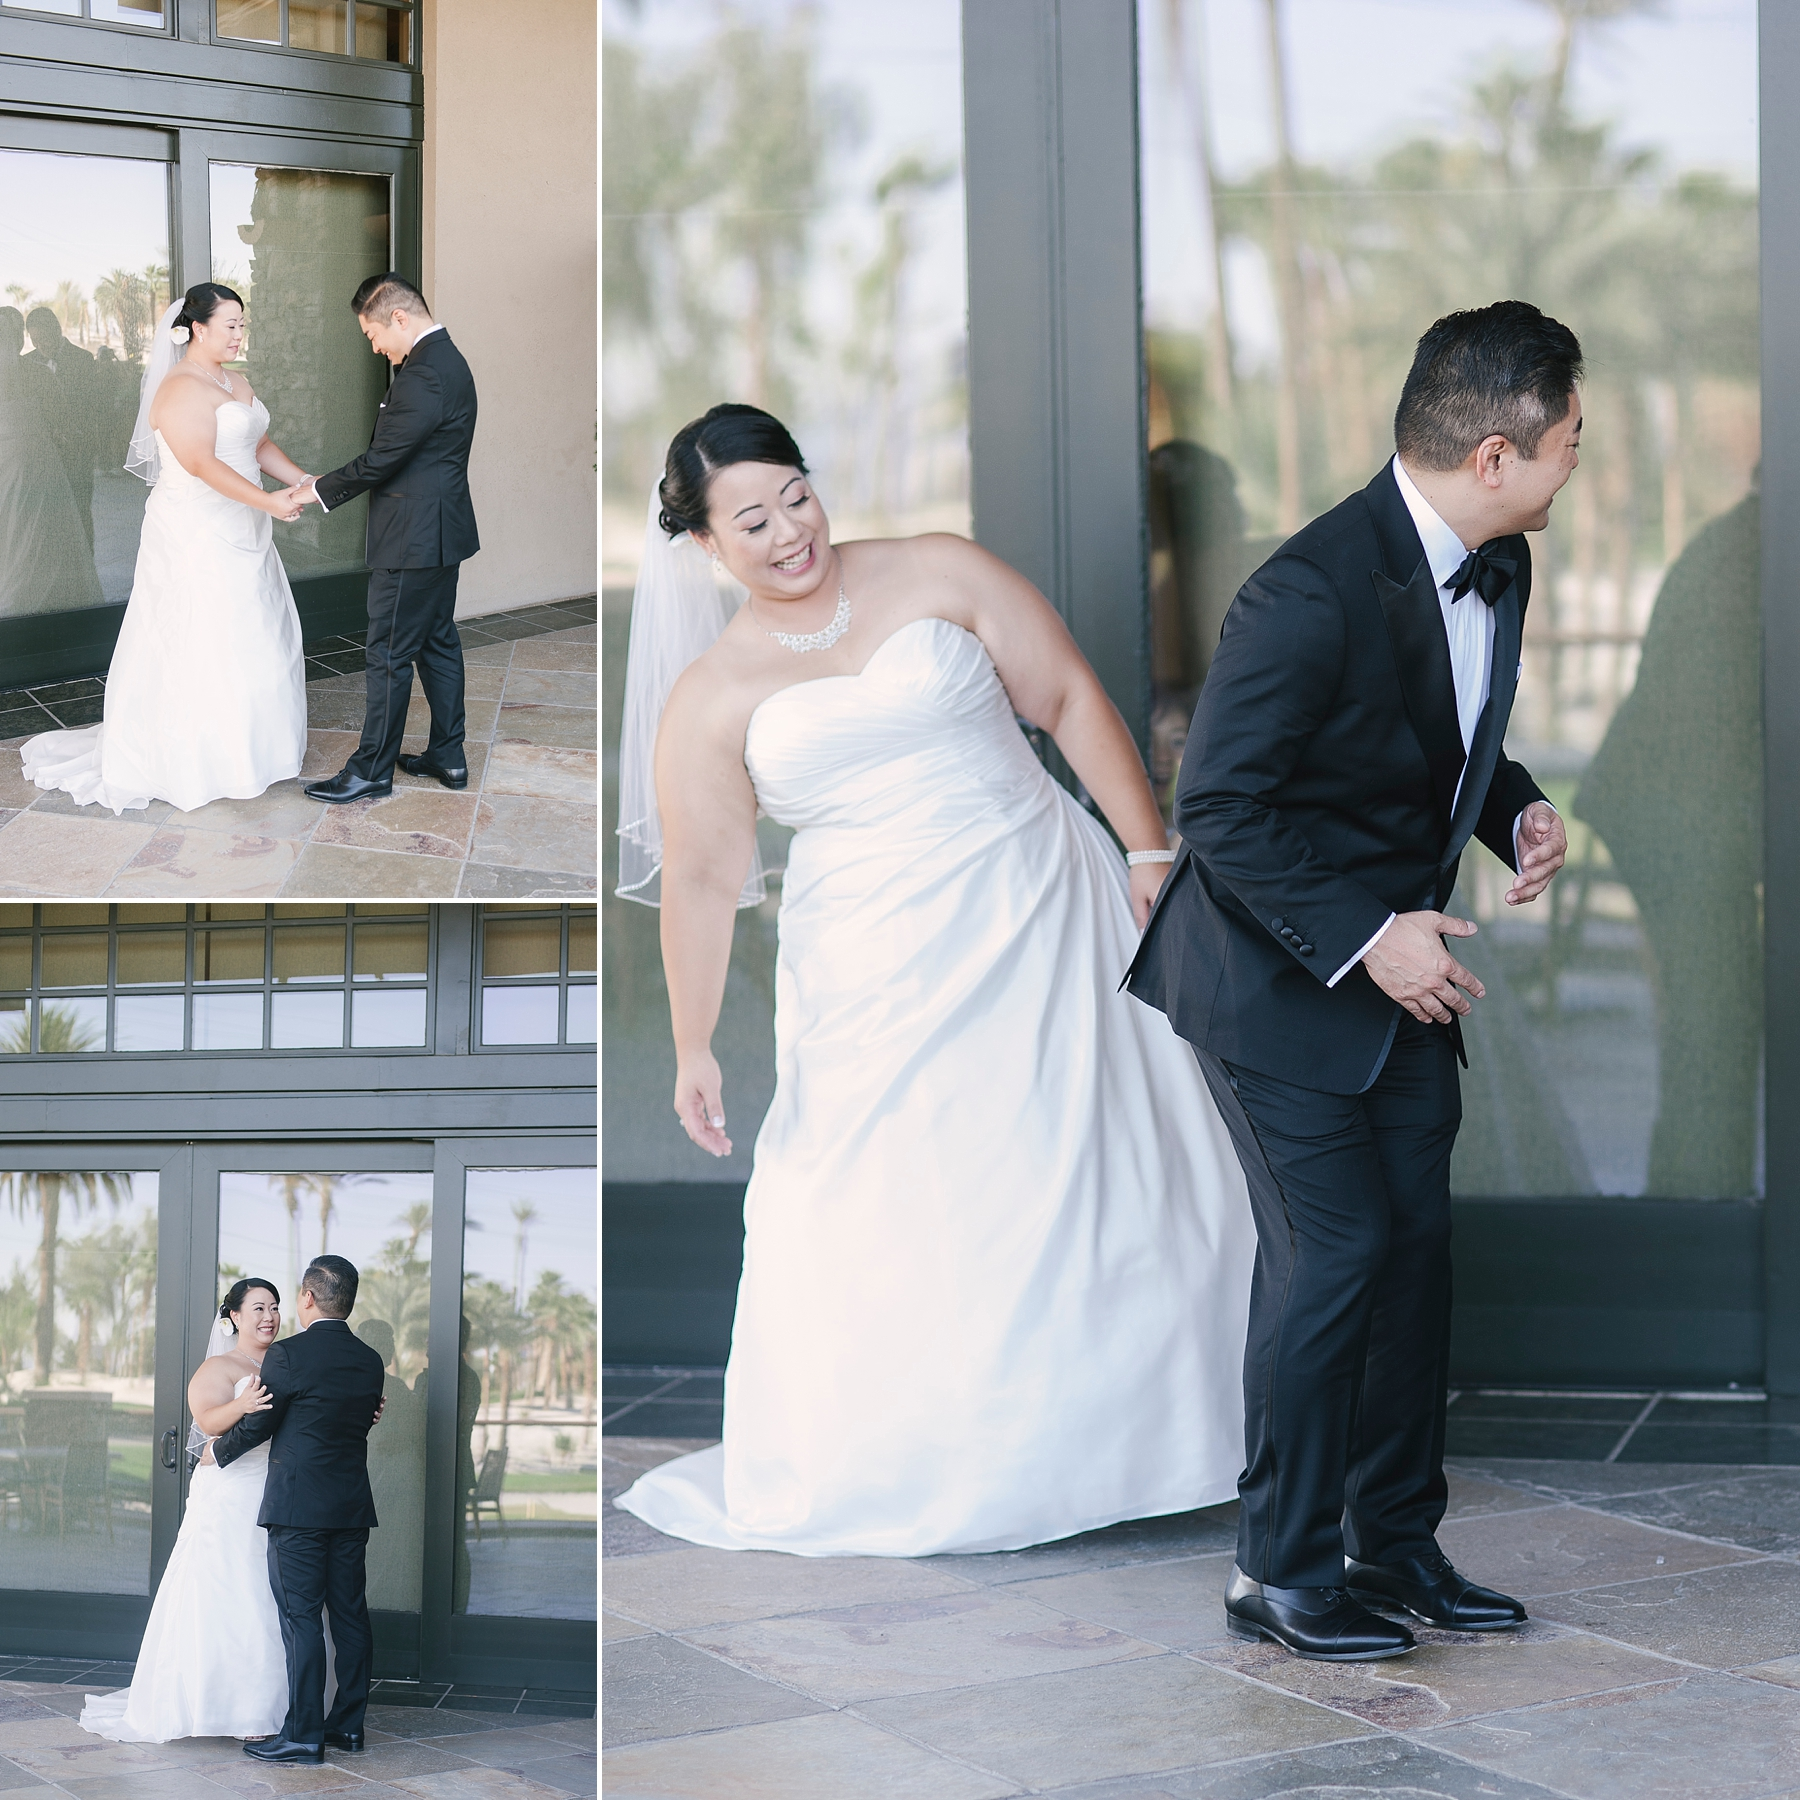 Cili_Golf_Club_Las_vegas_wedding_photography-12.jpg